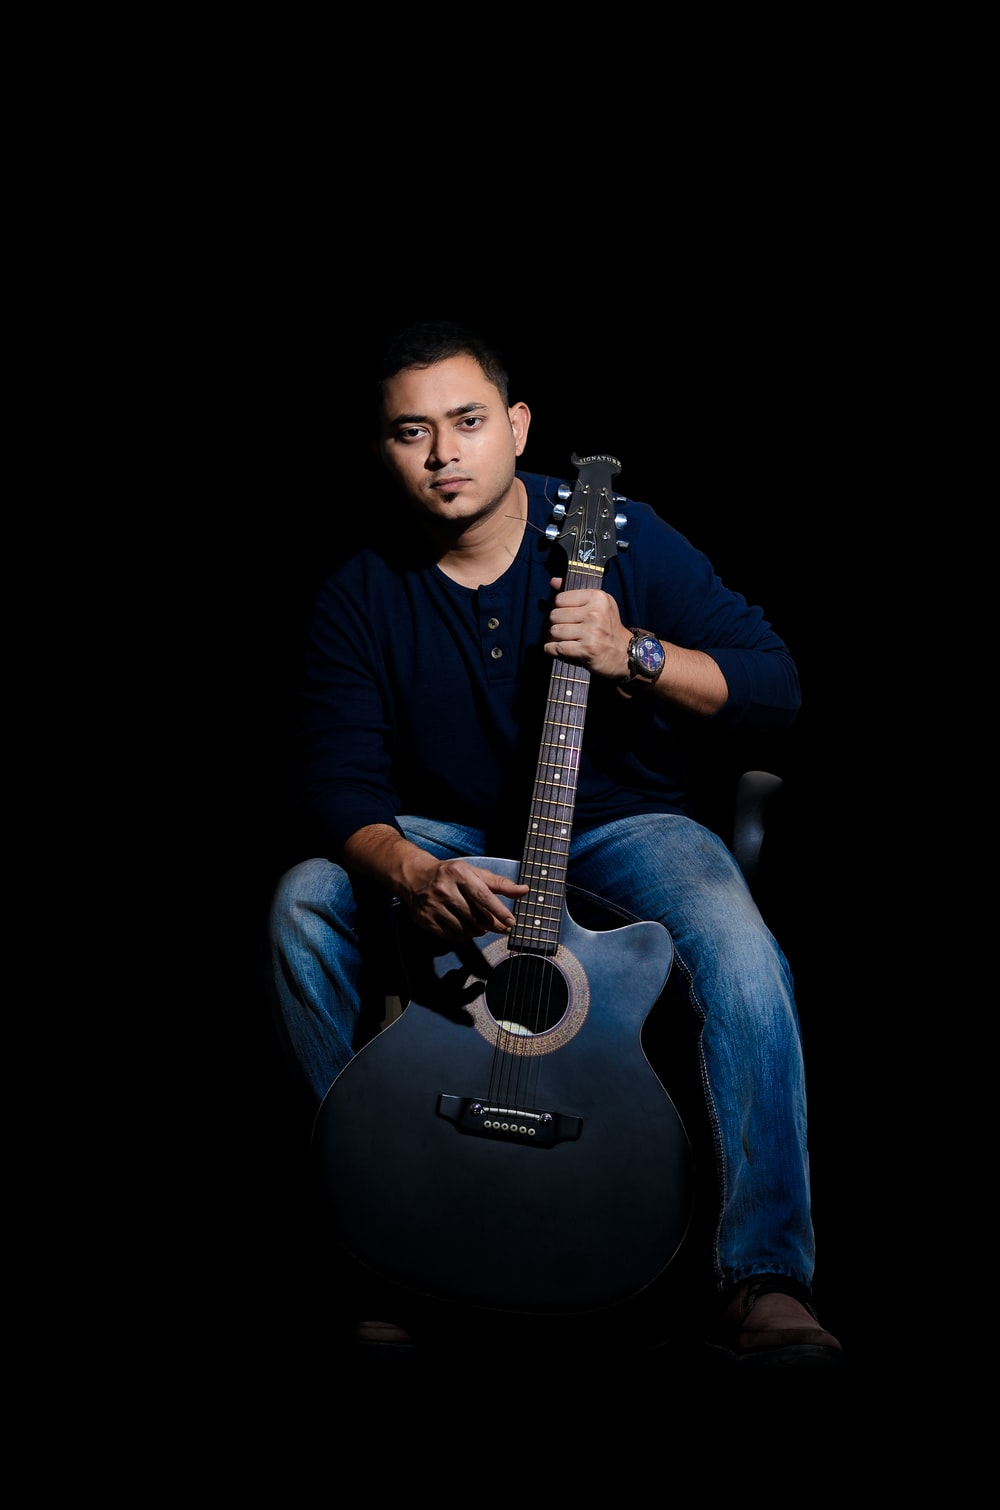 man sits while holding acoustic guitar on black background